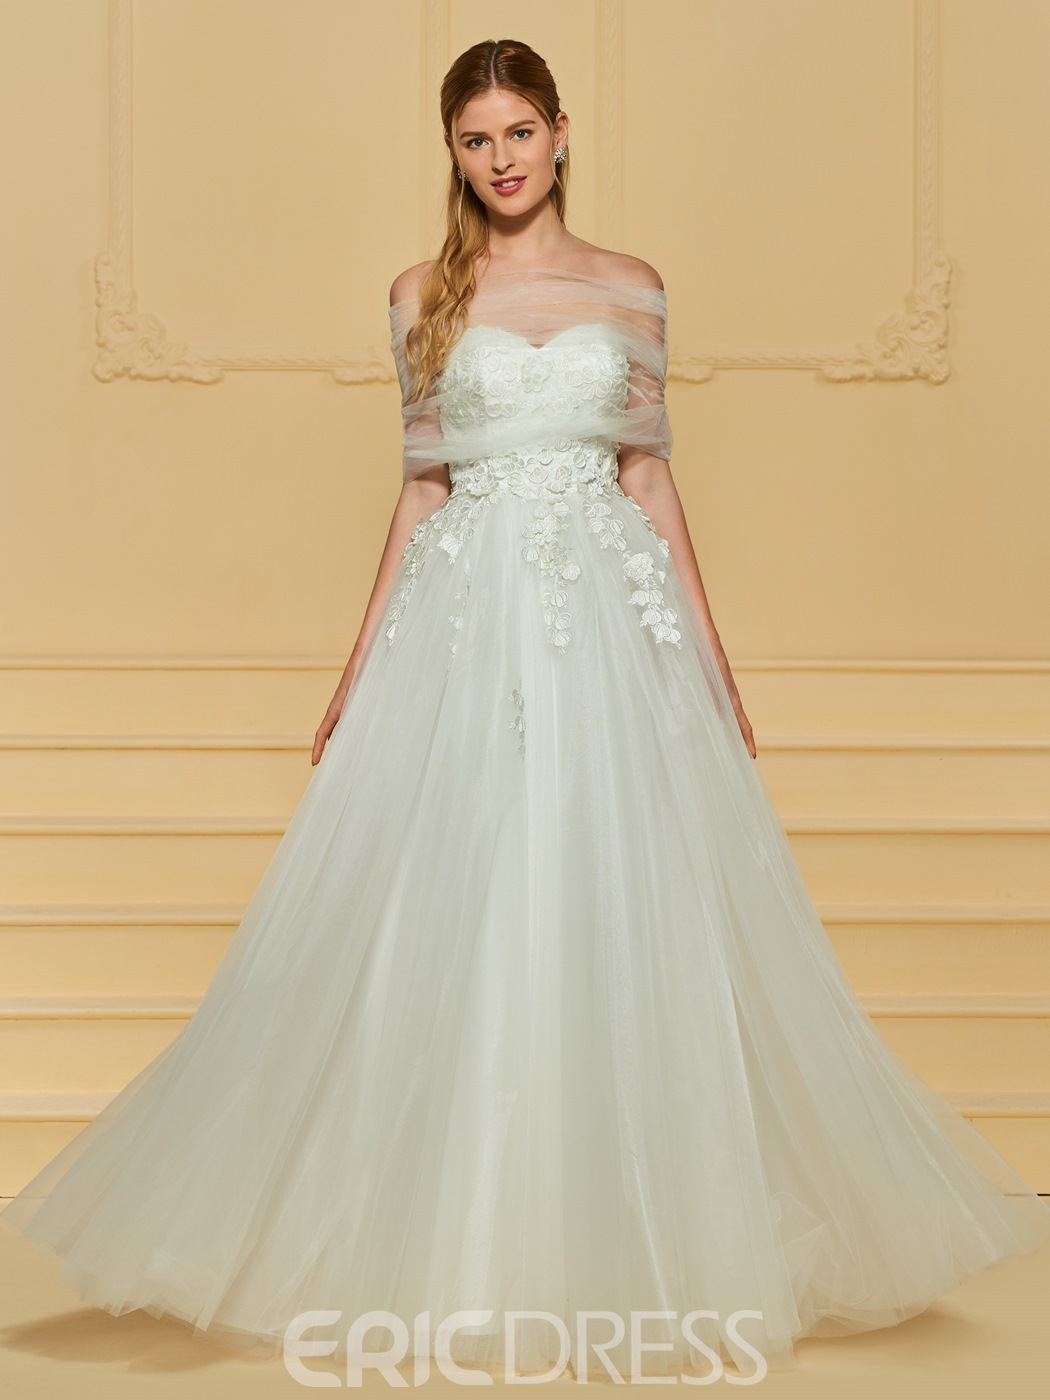 Ericdress Sweetheart Appliques A Line Tulle Wedding Dress 13172392 ...